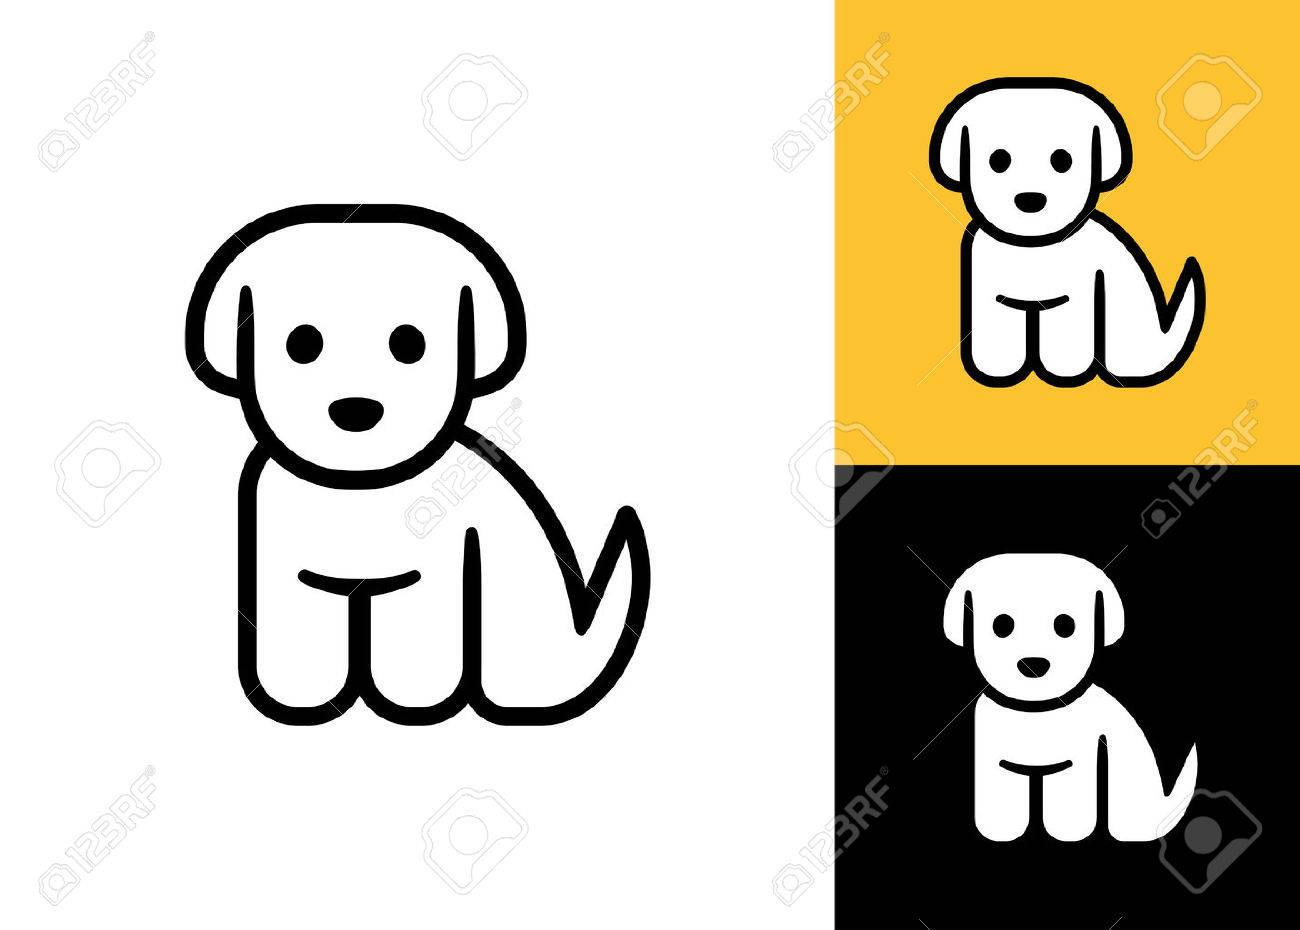 Puppy Icon Isolated On White Black And Yellow Background Cute Royalty Free Cliparts Vectors And Stock Illustration Image 60068989